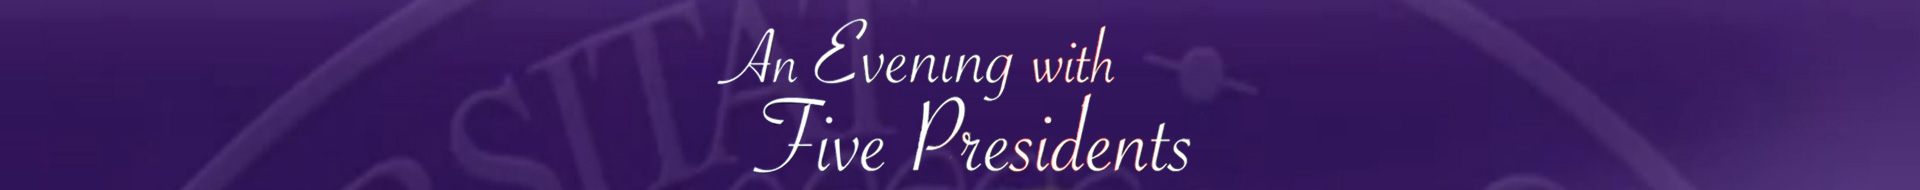 An Evening with Five Presidents